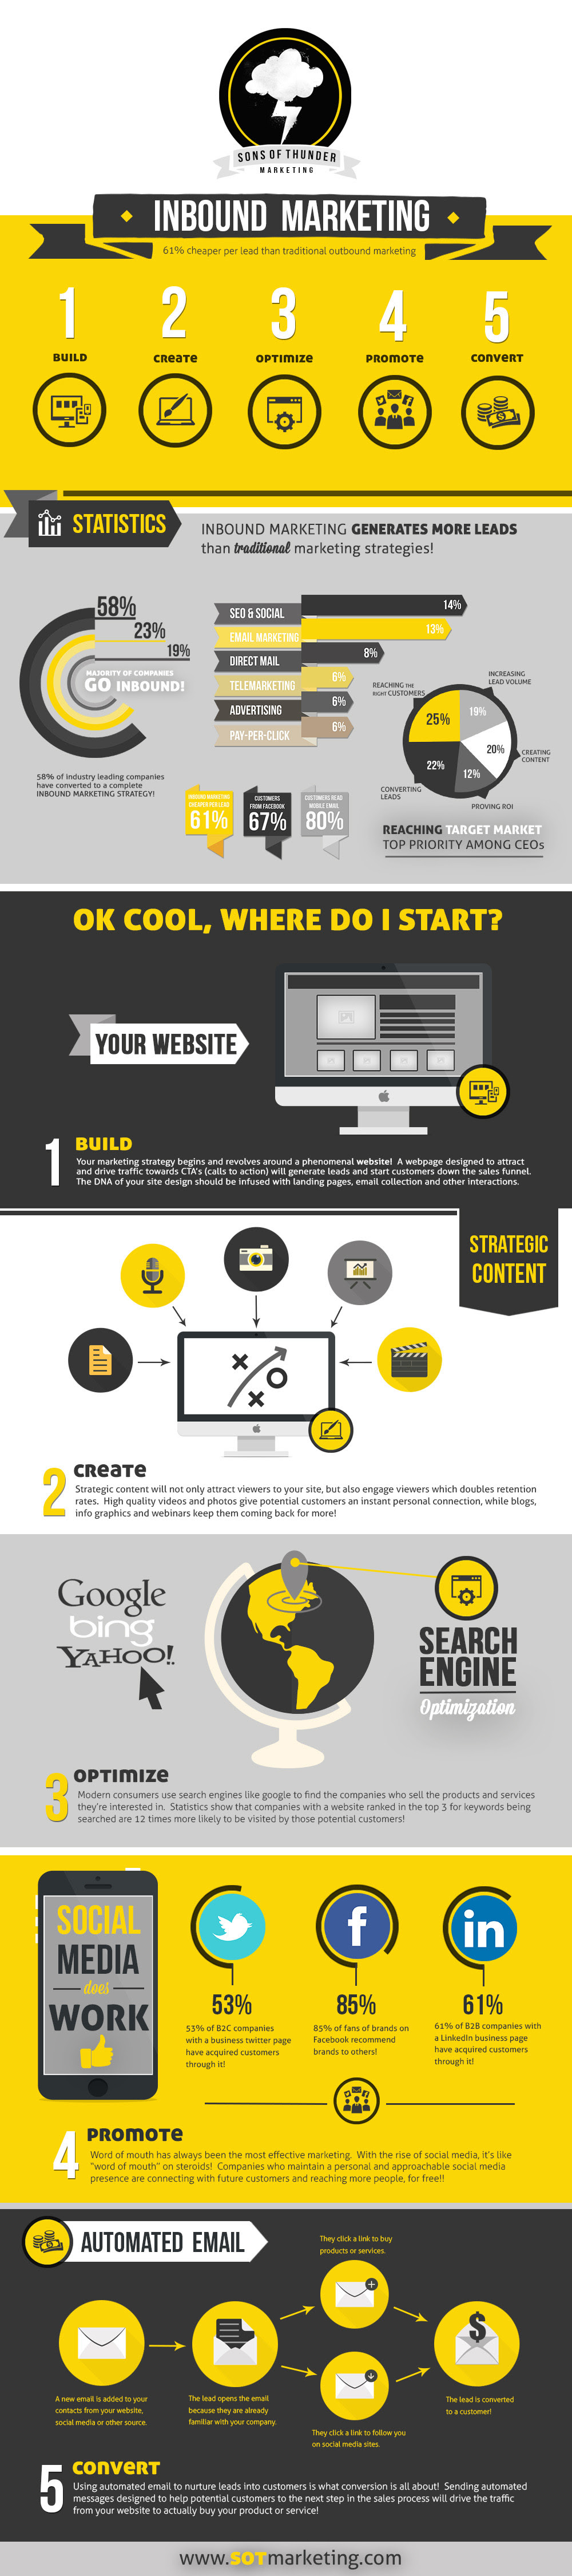 Infographic: Inbound marketing generates more leads than traditional marketing